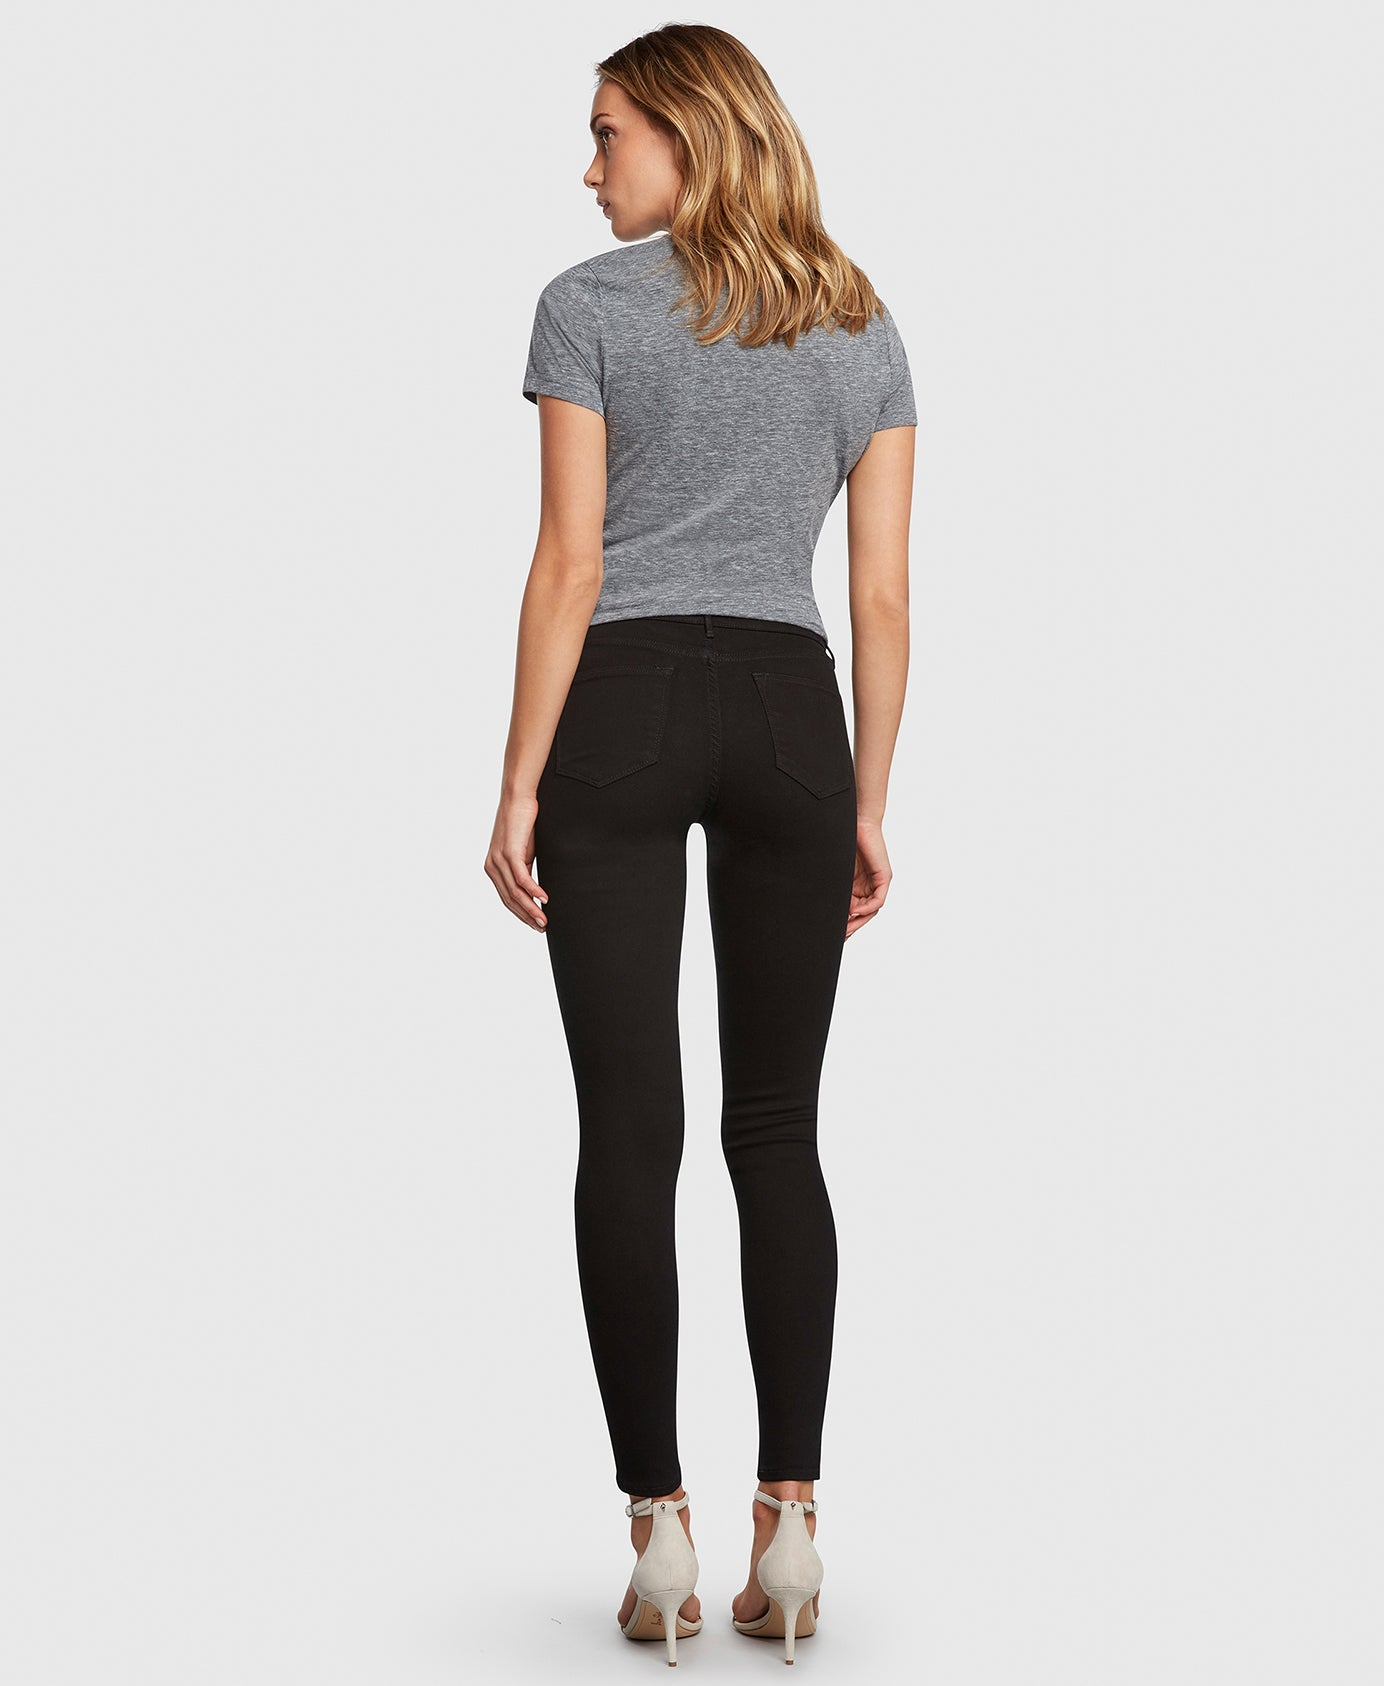 Principle DREAMER in Painted Black flattering skinny jeans back